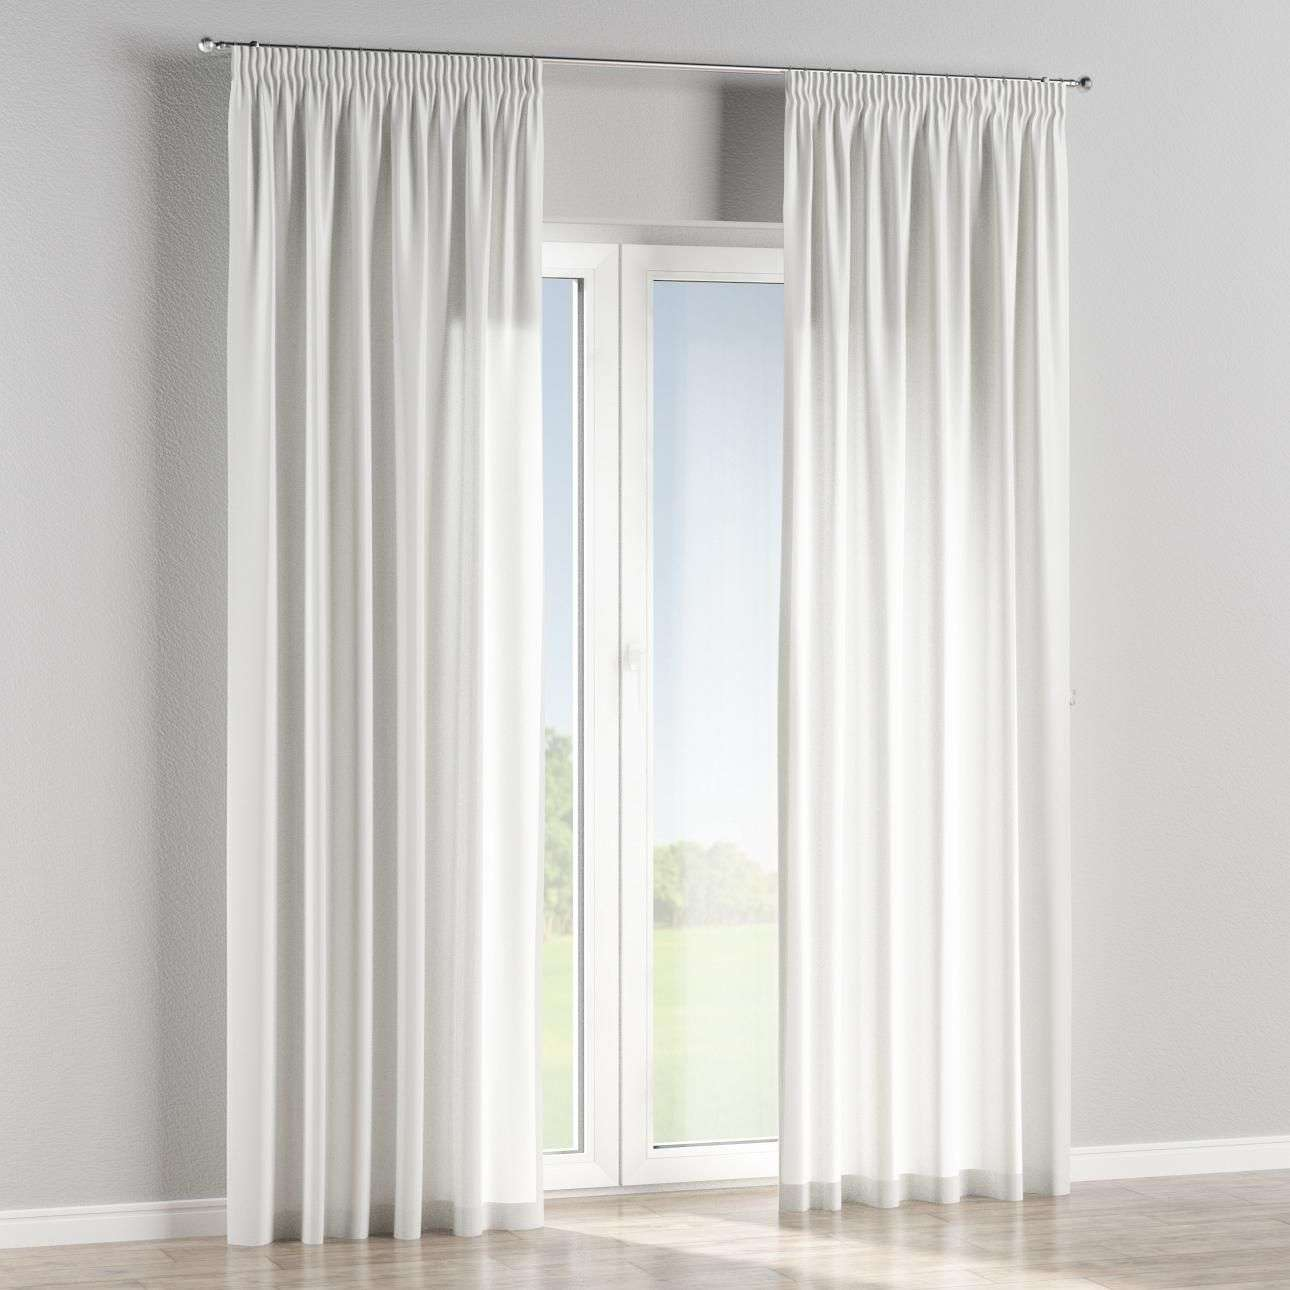 Pencil pleat lined curtains in collection Bristol, fabric: 125-15